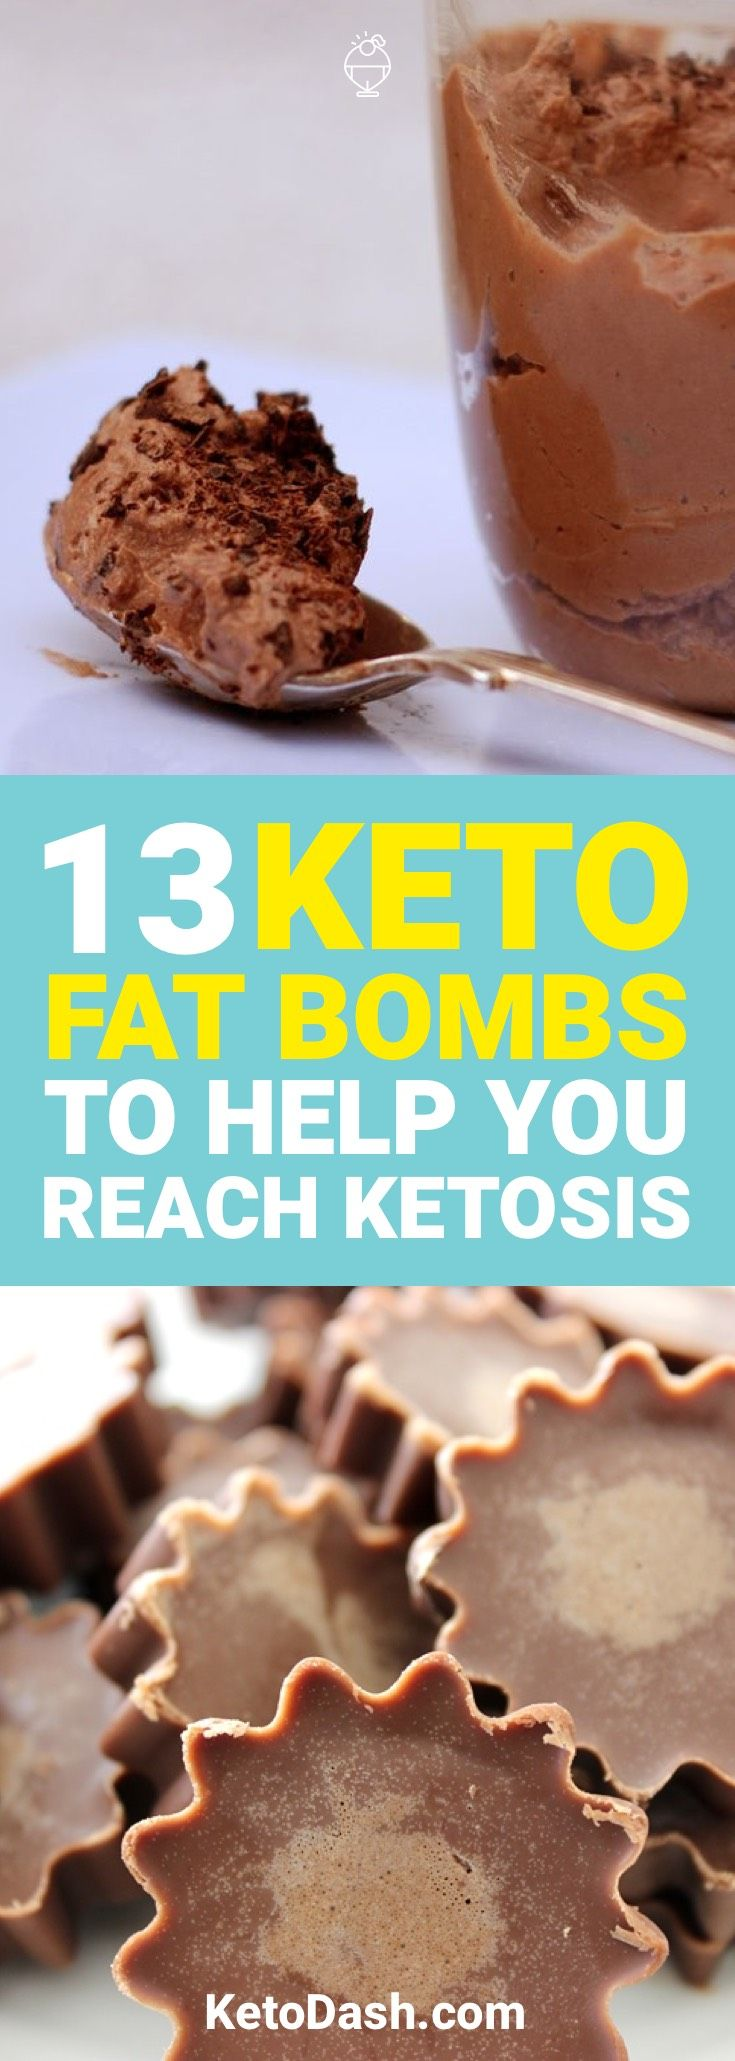 Being on a ketogenic diet requires you to eat a certain number of fats everyday if you want to reach ketosis. Sometimes, you may think you're going to fall short of that. These 13 keto fat bombs ensure that you'll reach the fats you need everyday.